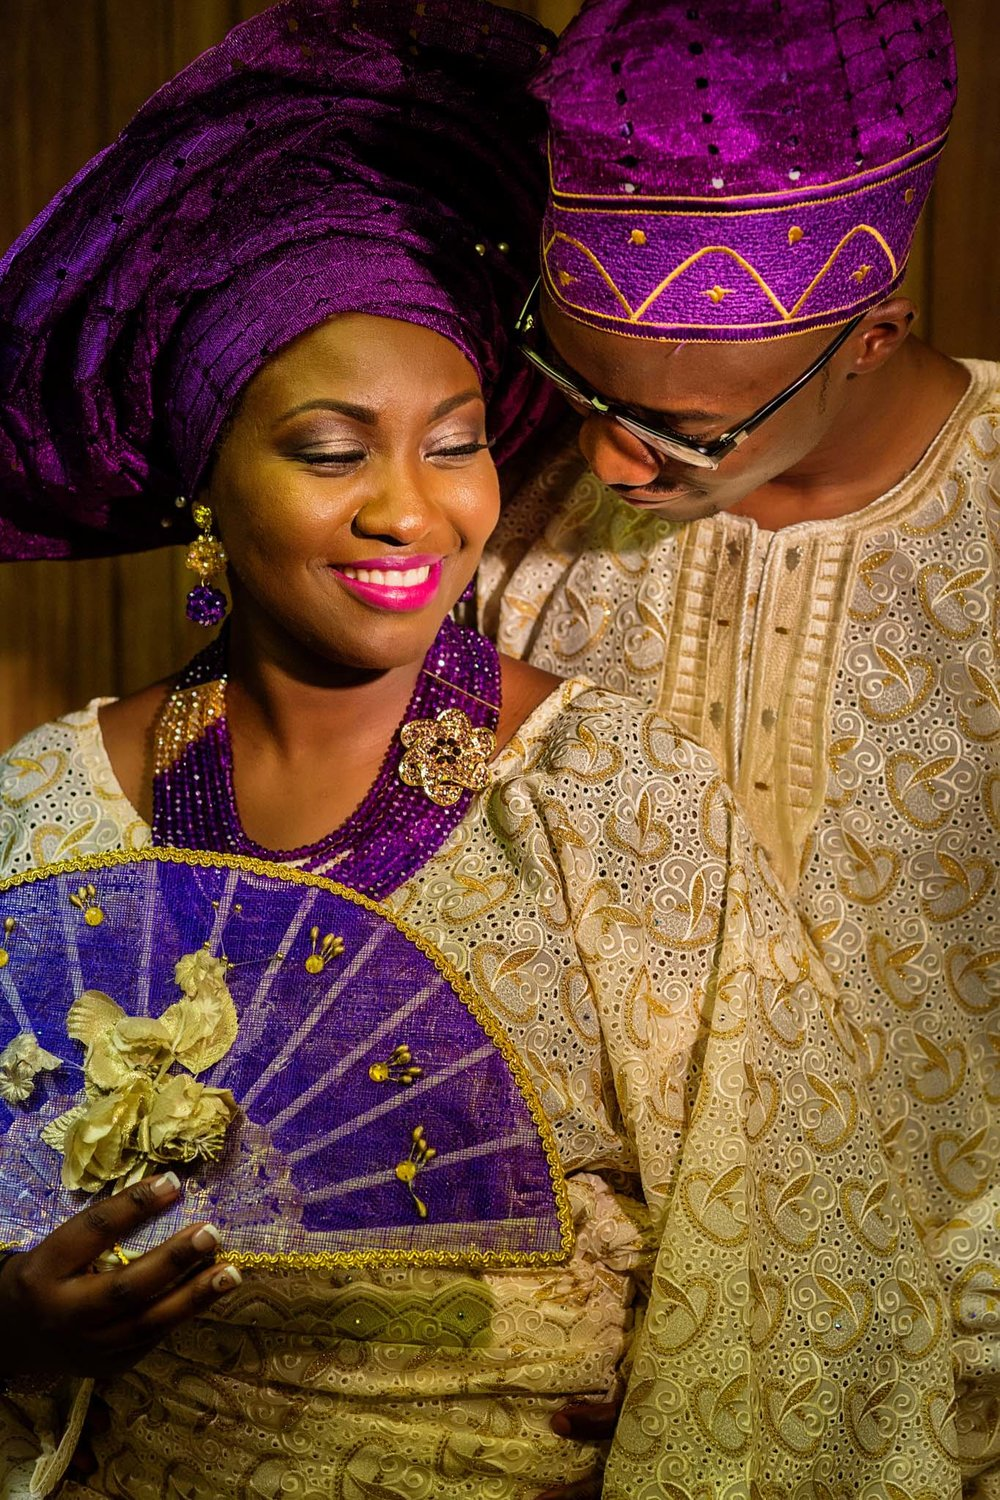 For-FacebookAndWebsites-Yewande-Lolu-Traditional-Wedding-Winston-Salem-Clemmons-NC-Yoruba-Nigerian-Kumolu-Studios-590.jpg